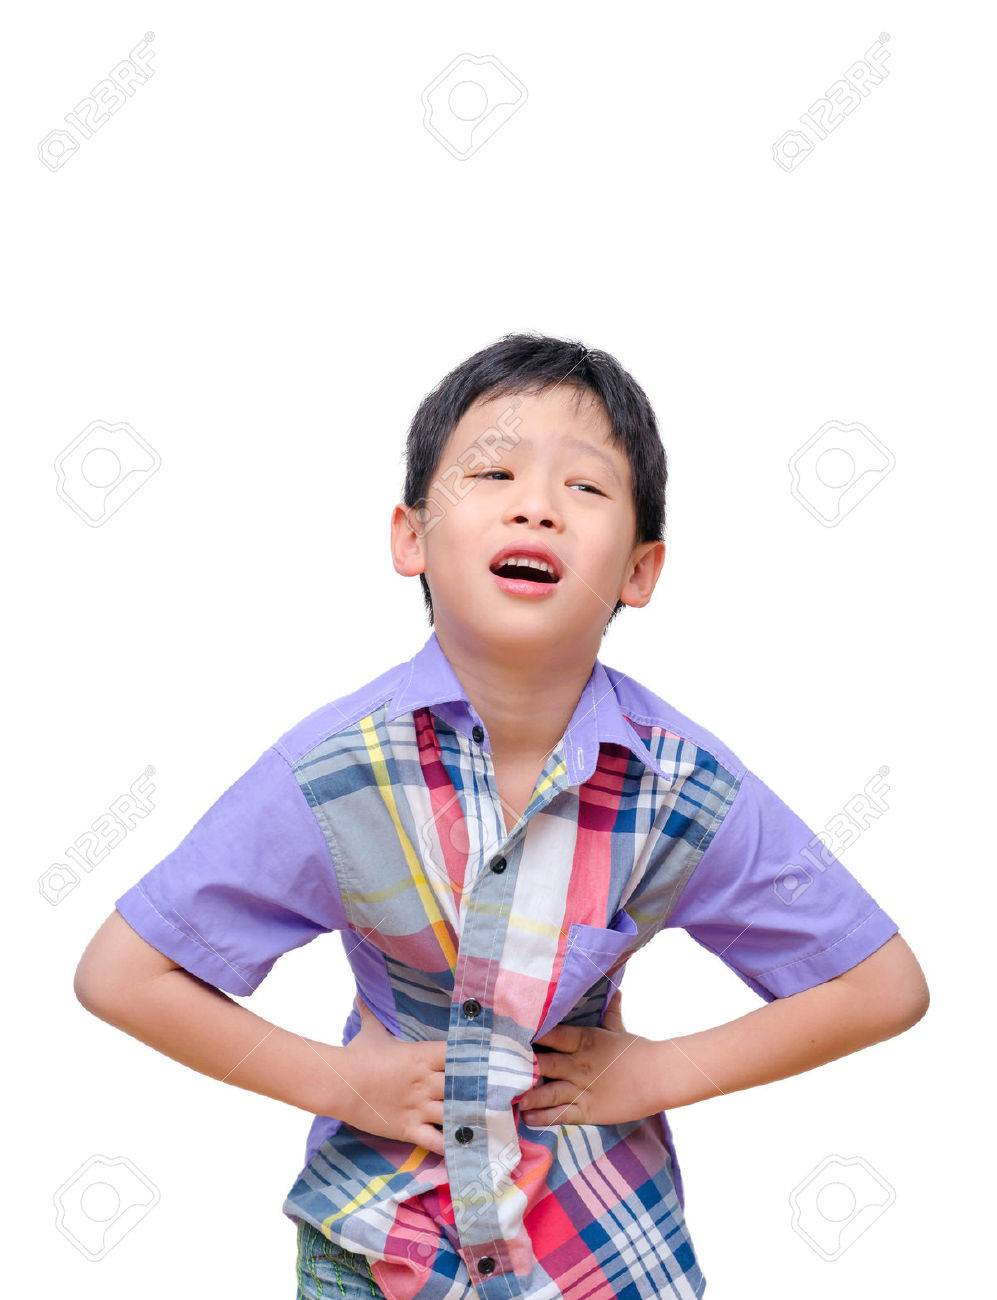 Little boy with stomachache isolated on white background Stock Photo - 36233224